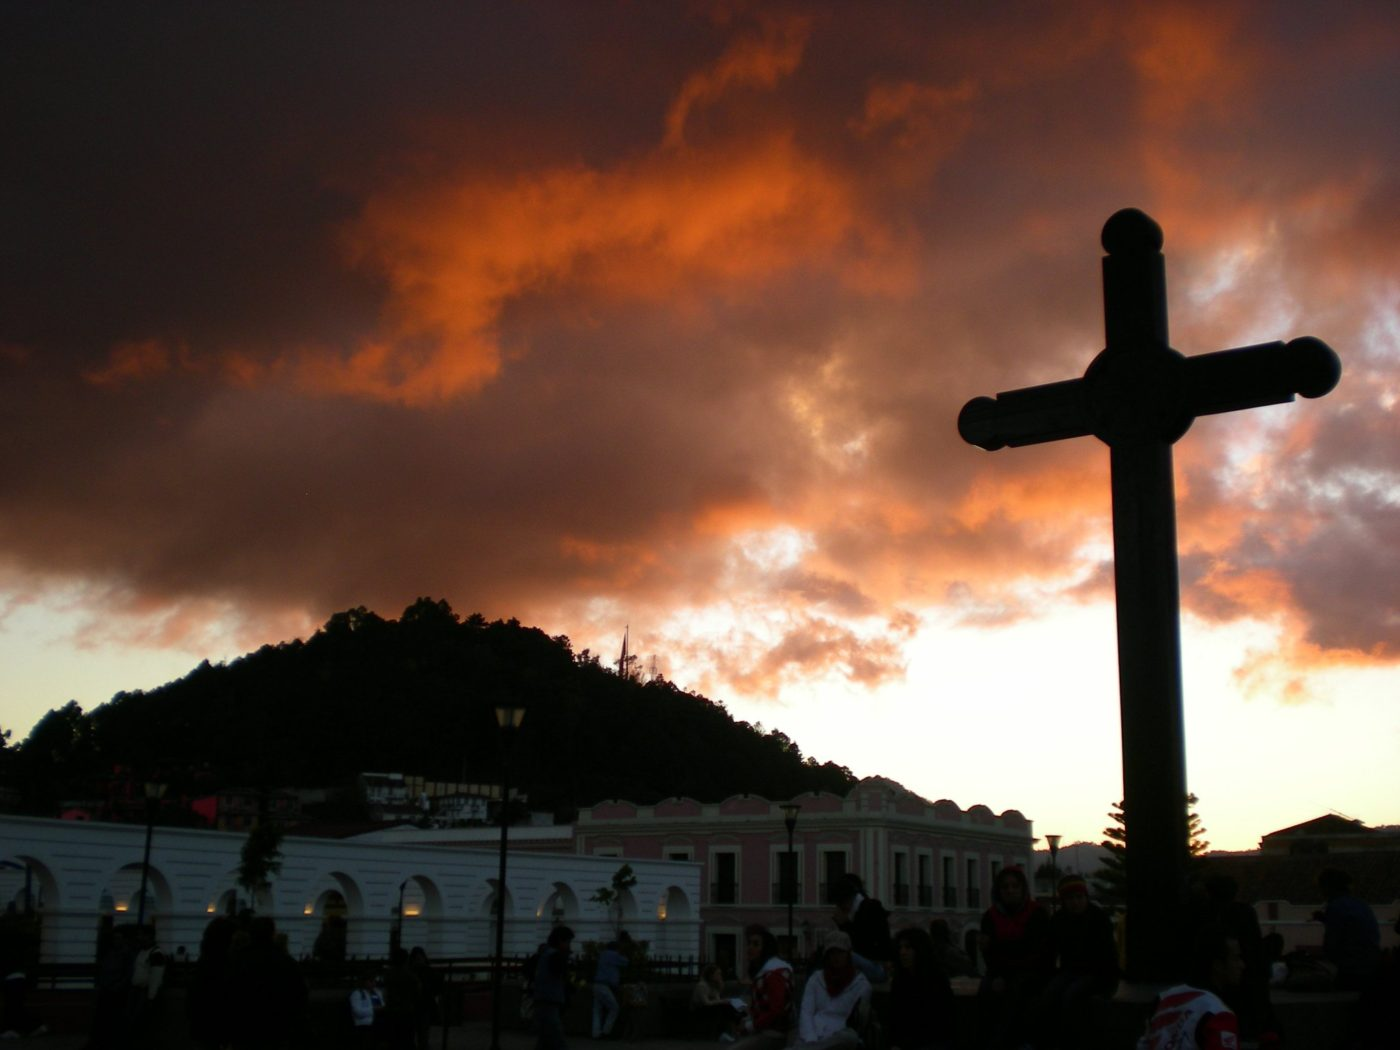 A cross during dawn in a Mexican town